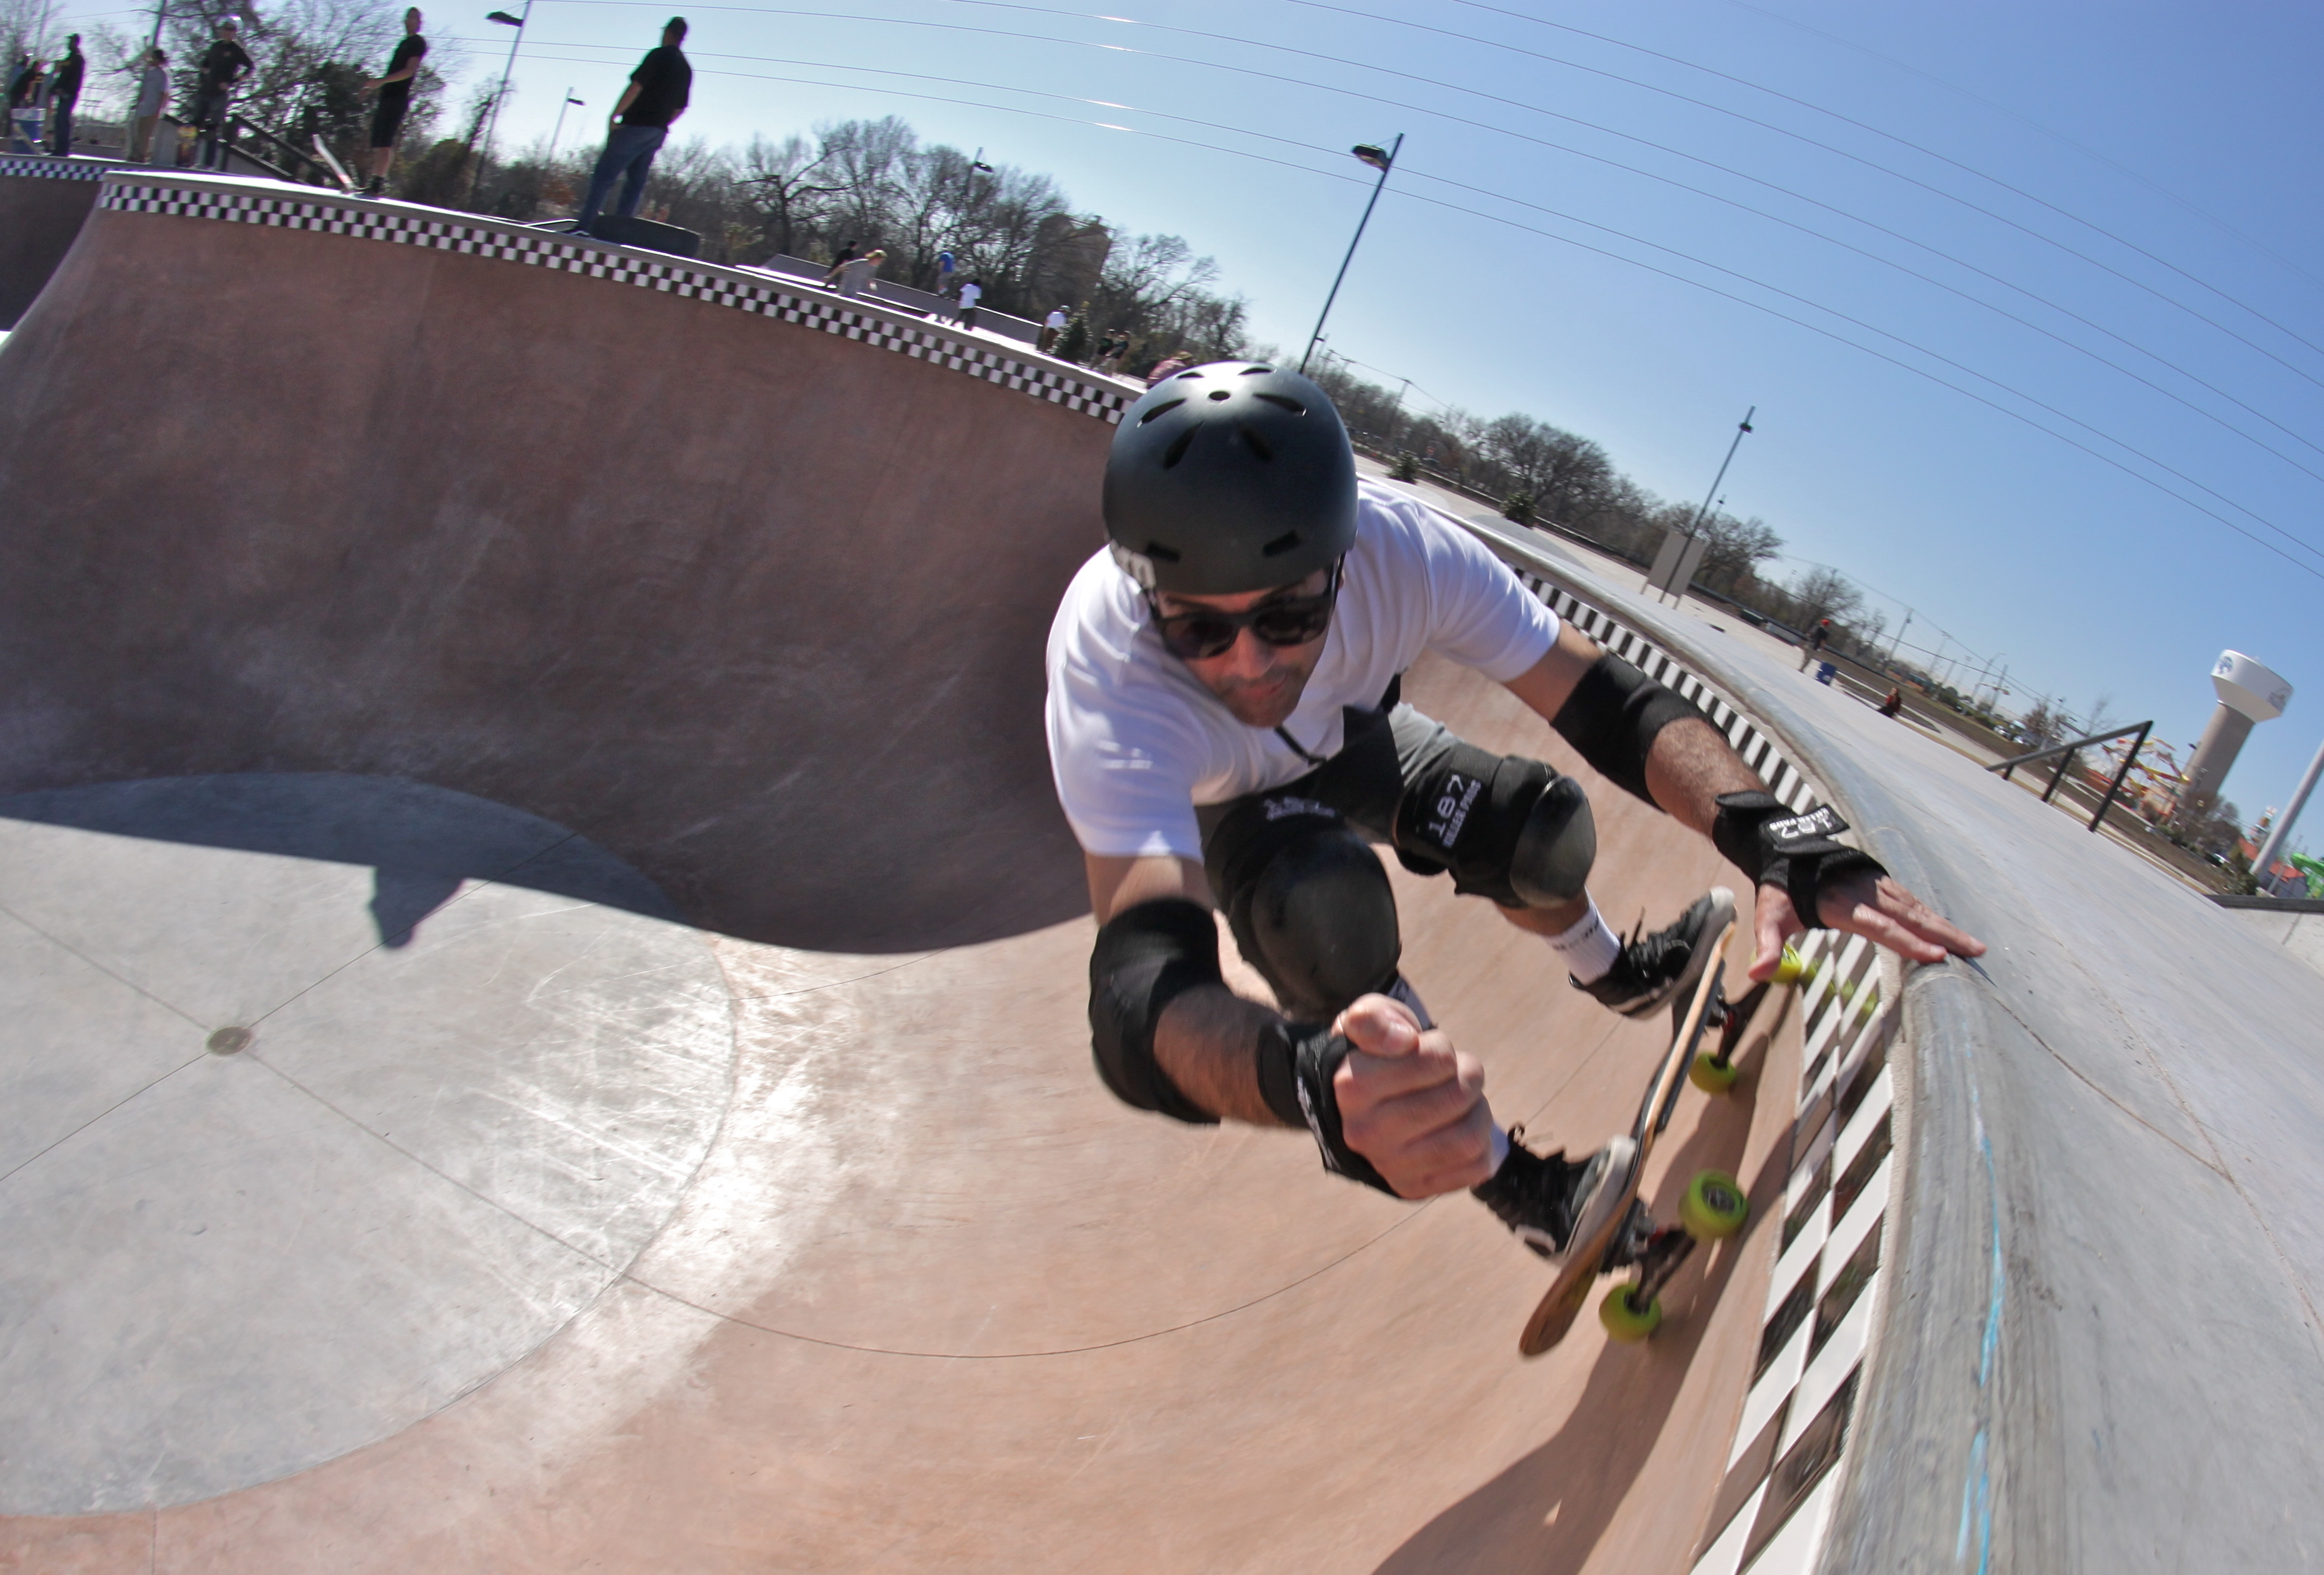 Richard Iniguez Photo by SK8DFW edit15312286